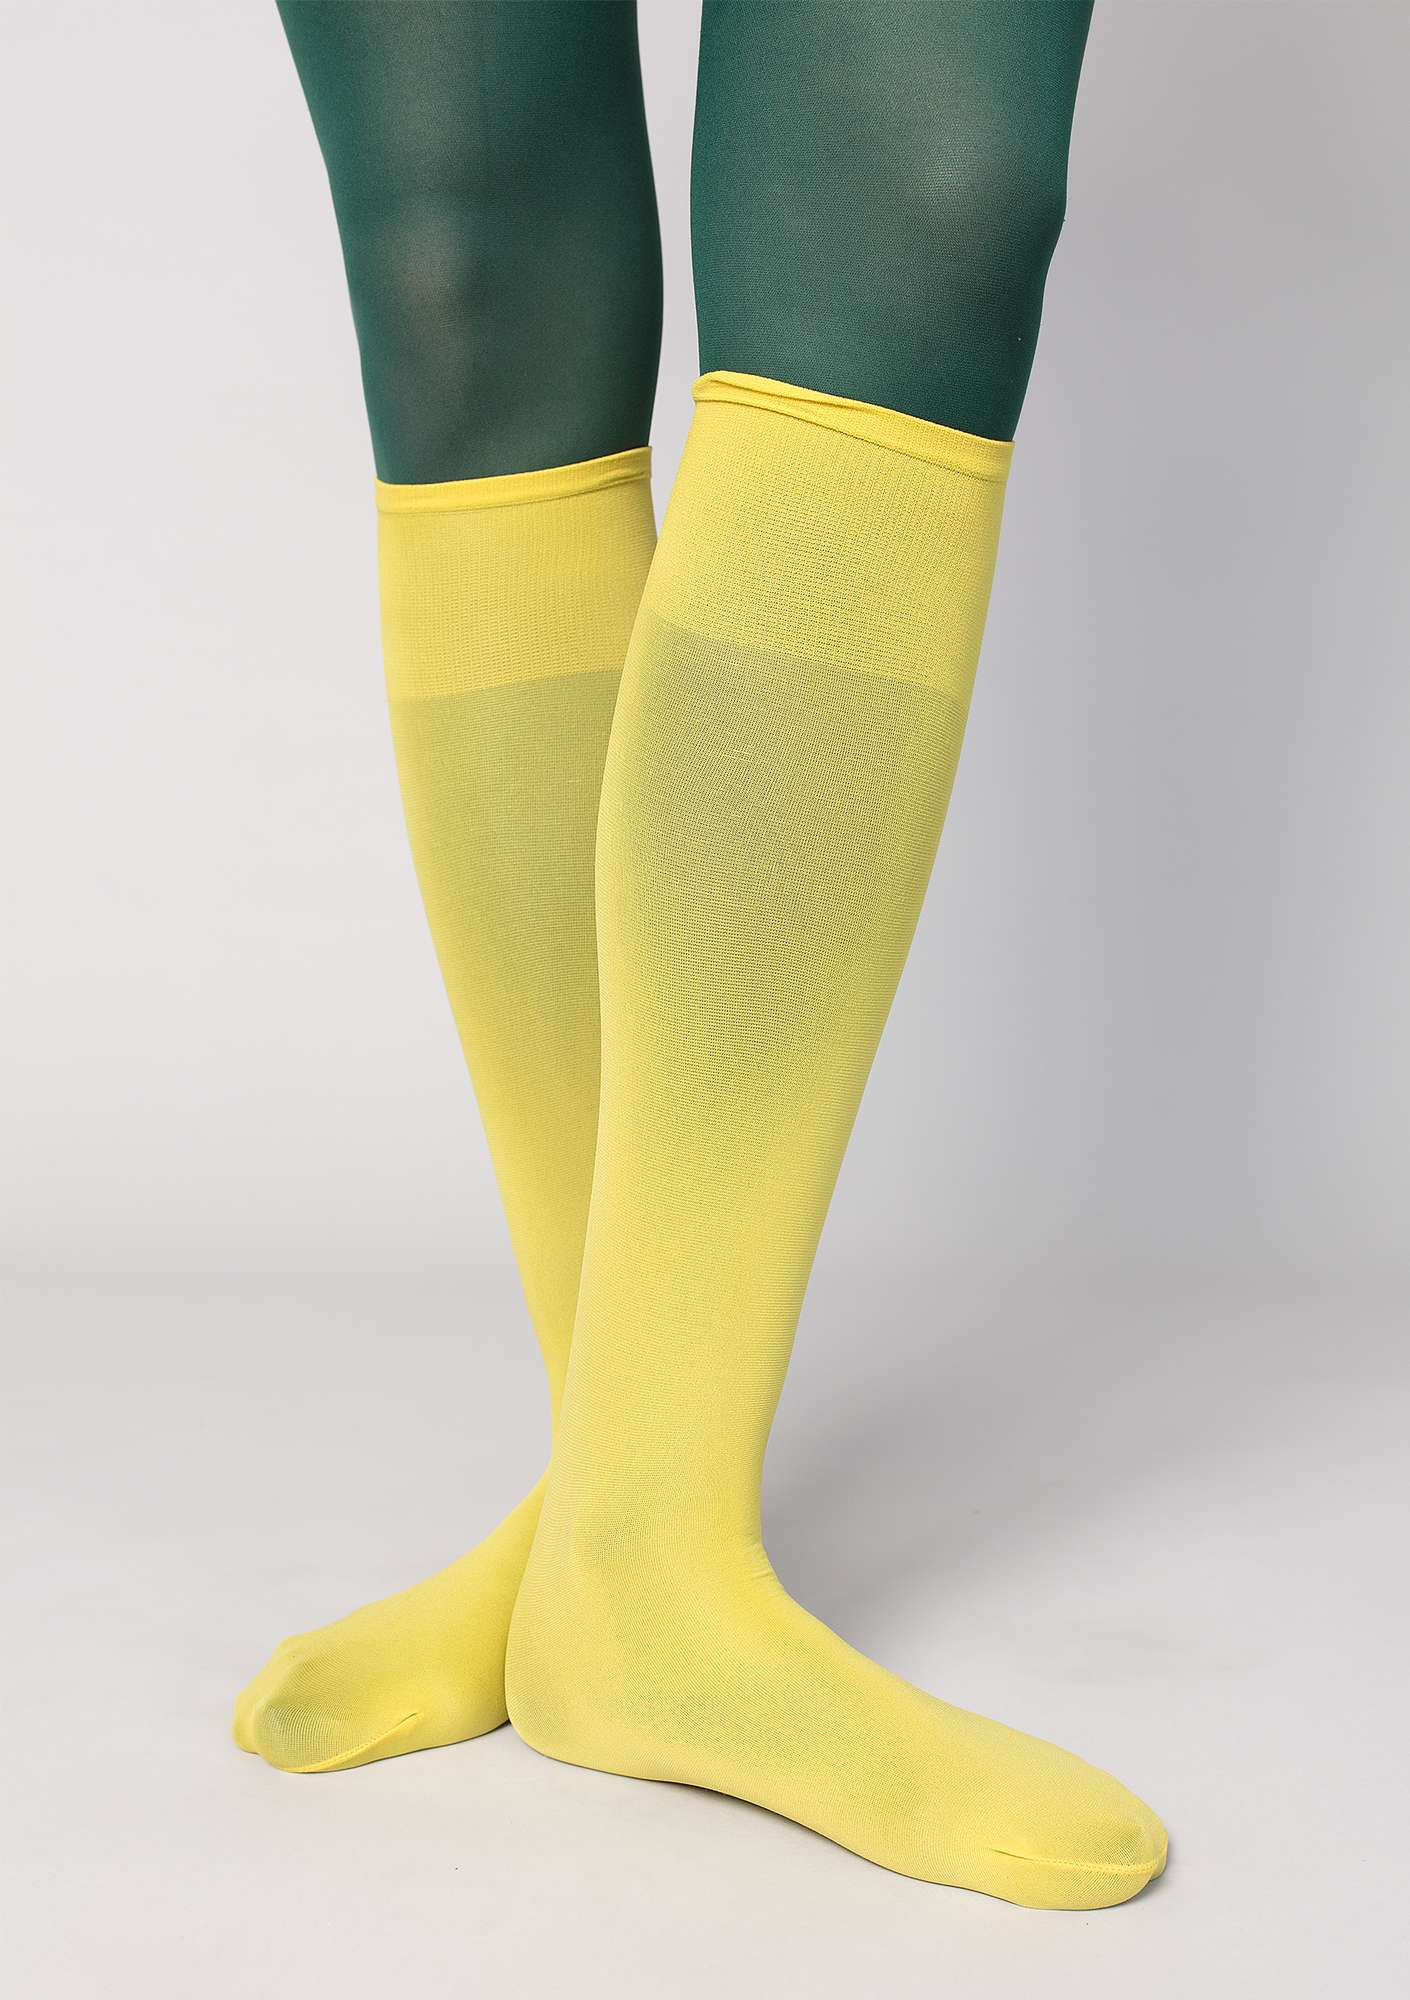 Knee-highs in recycled nylon dijon